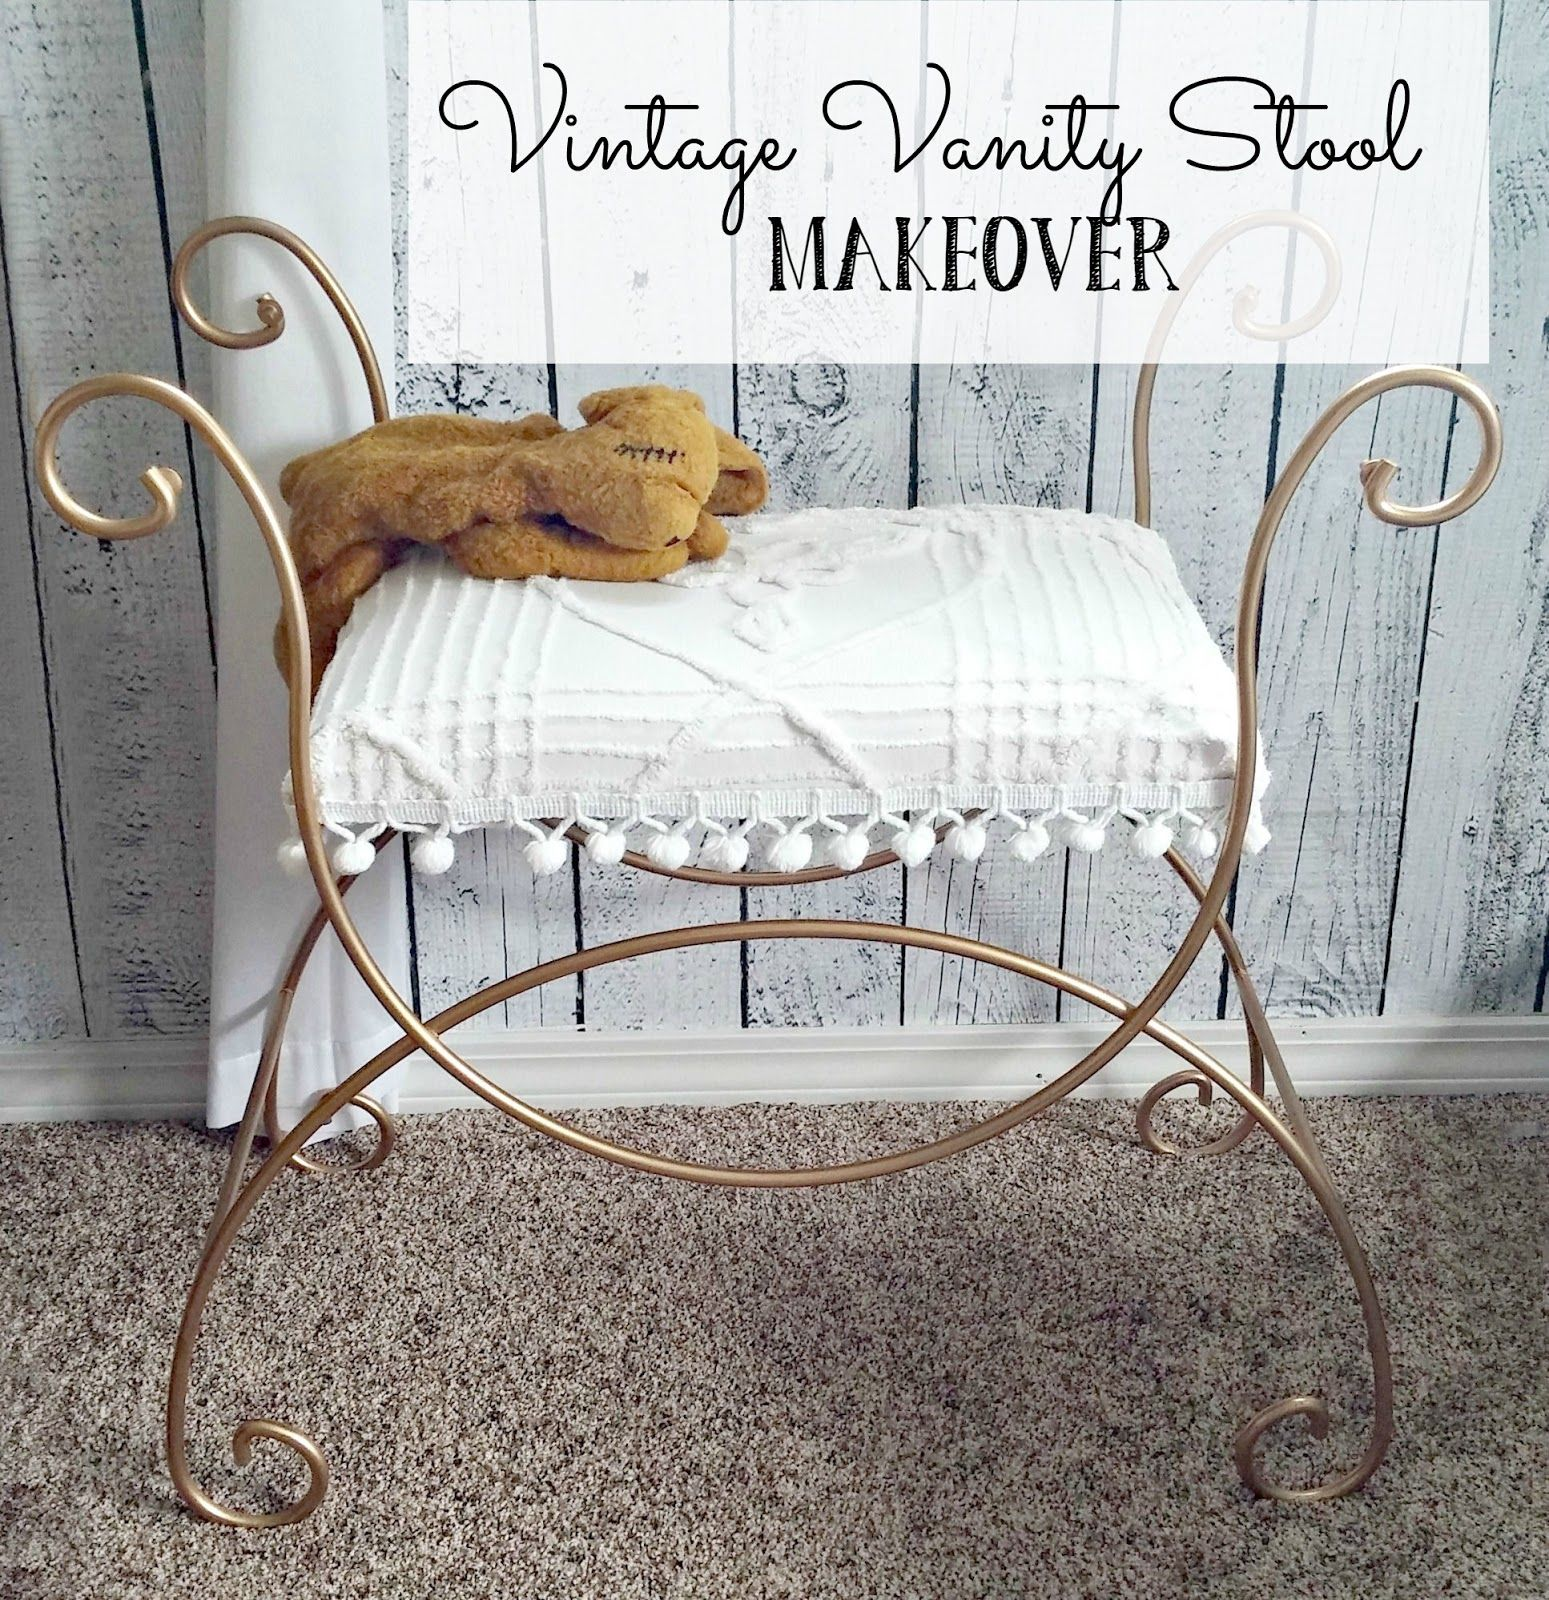 Vintage Vanity Stool Makeover Vanity Stool Bathroom Vanity Chair Stool Makeover